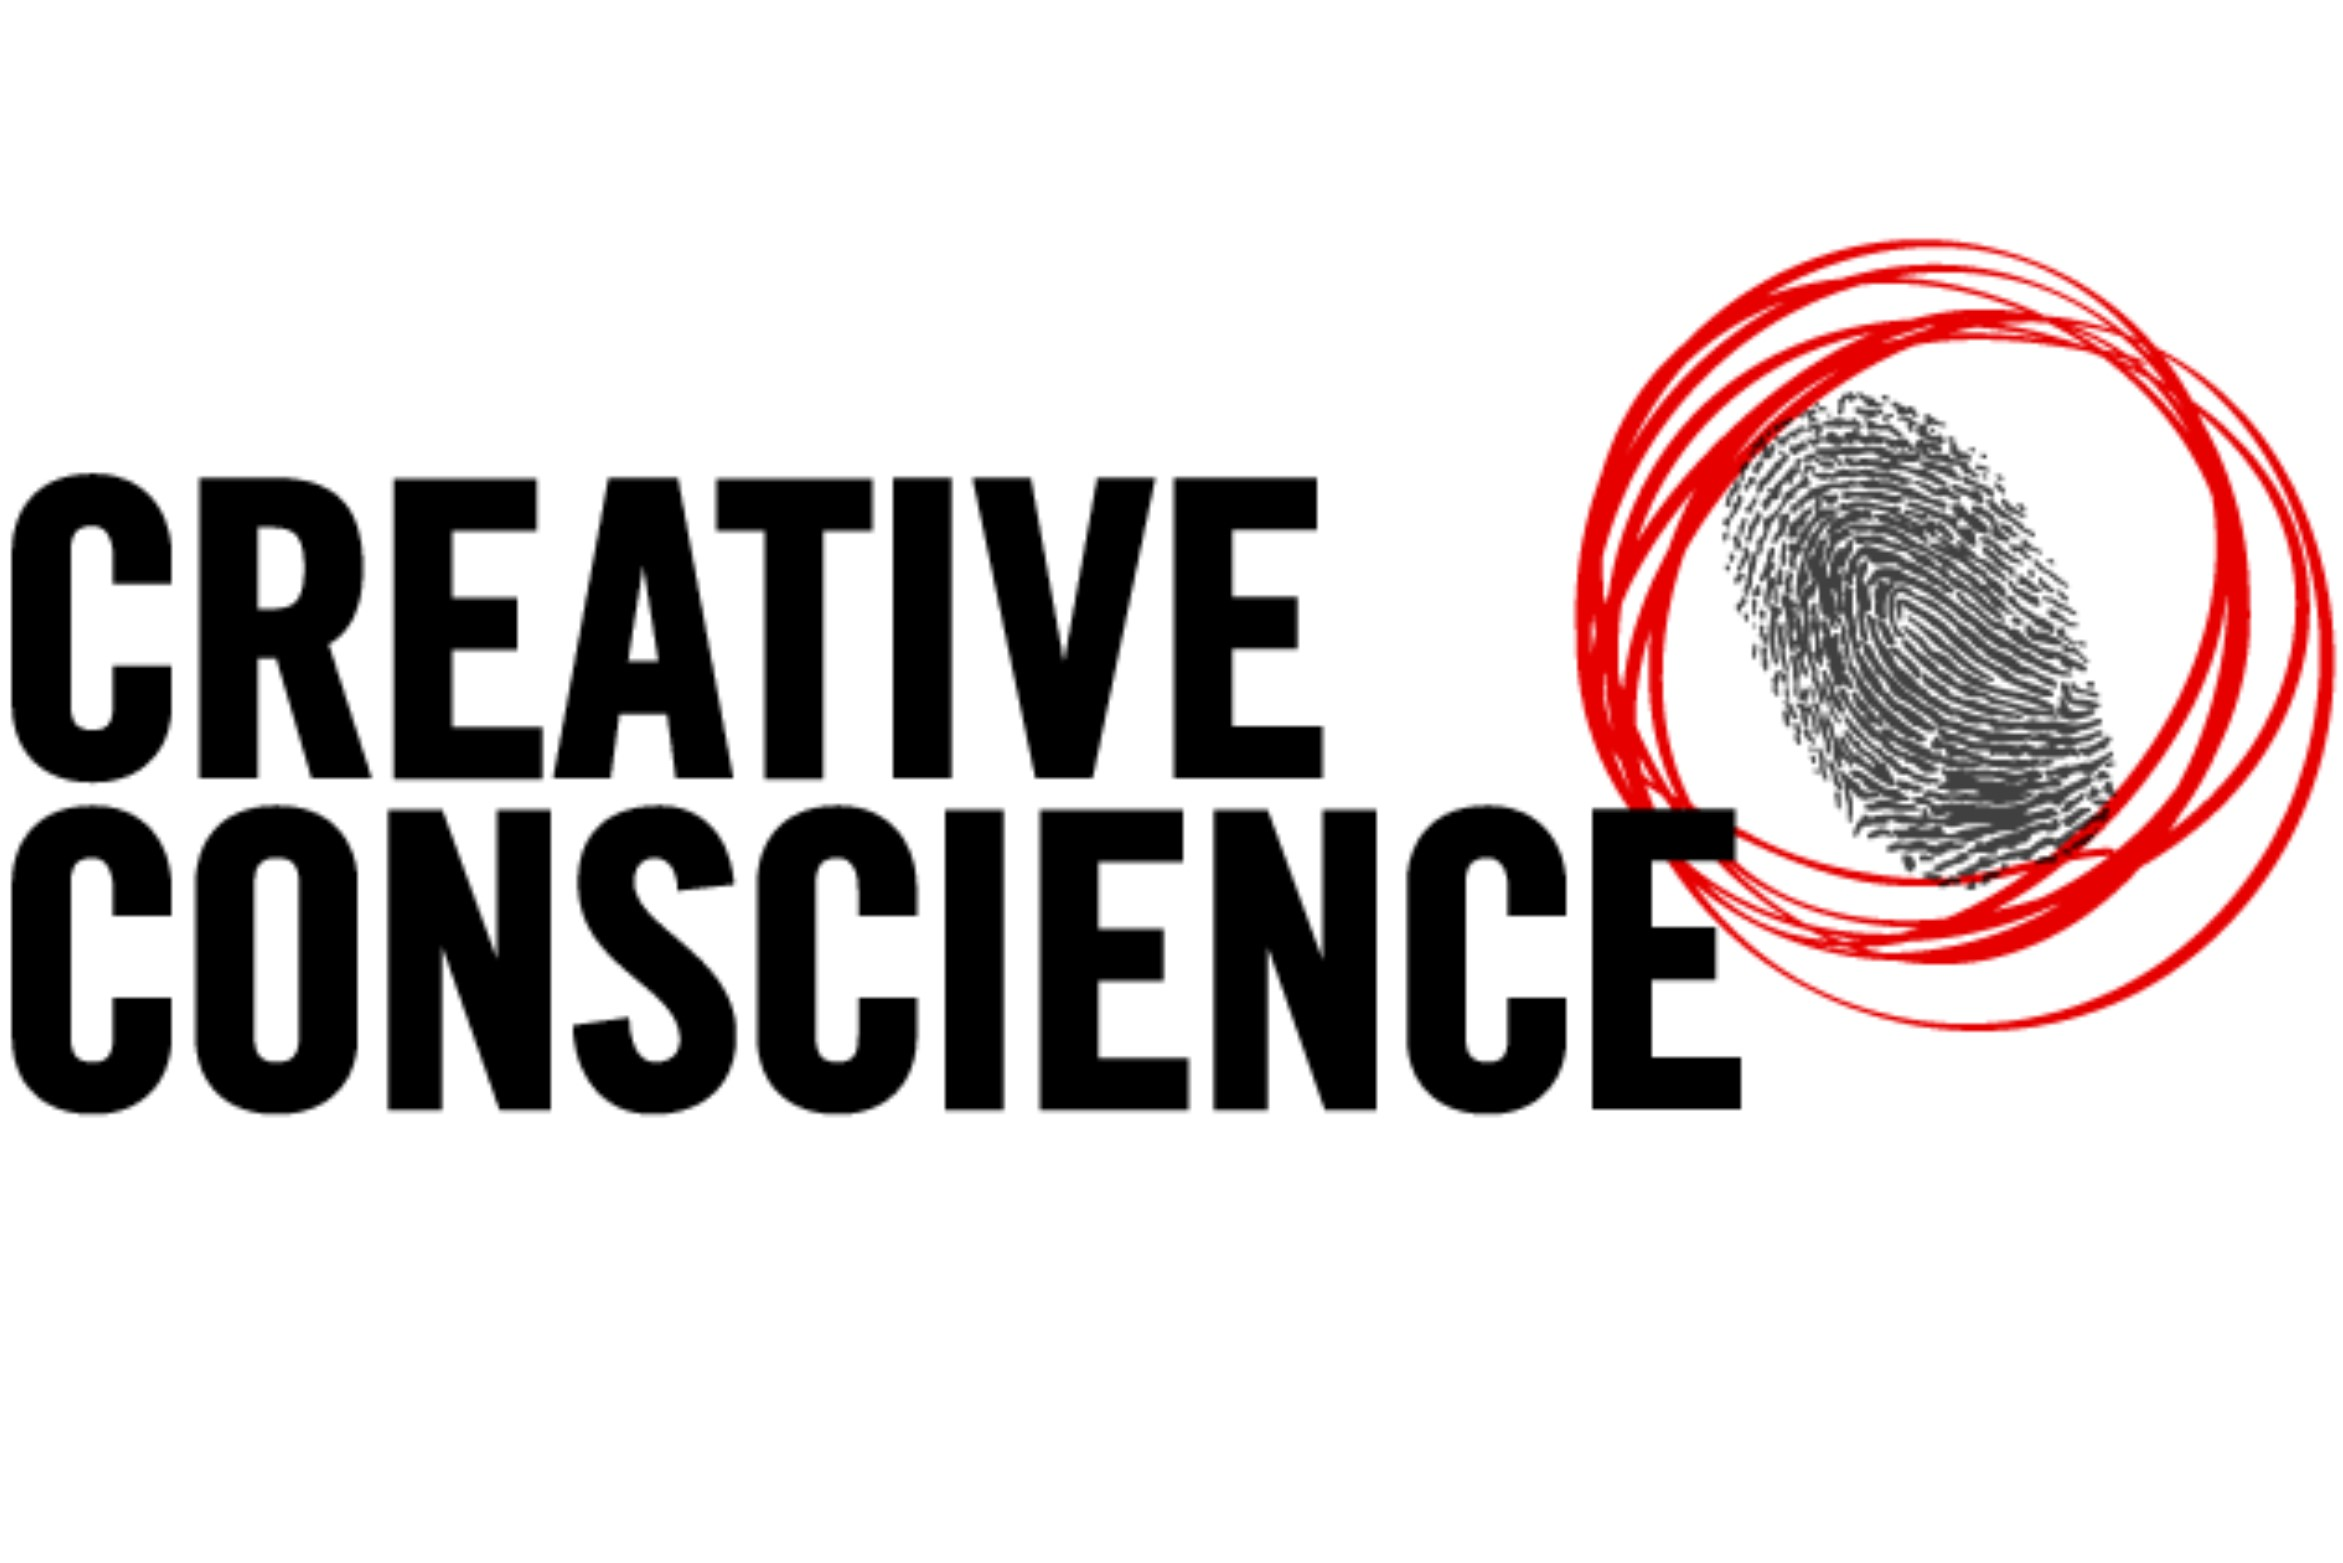 creative conscience for website page